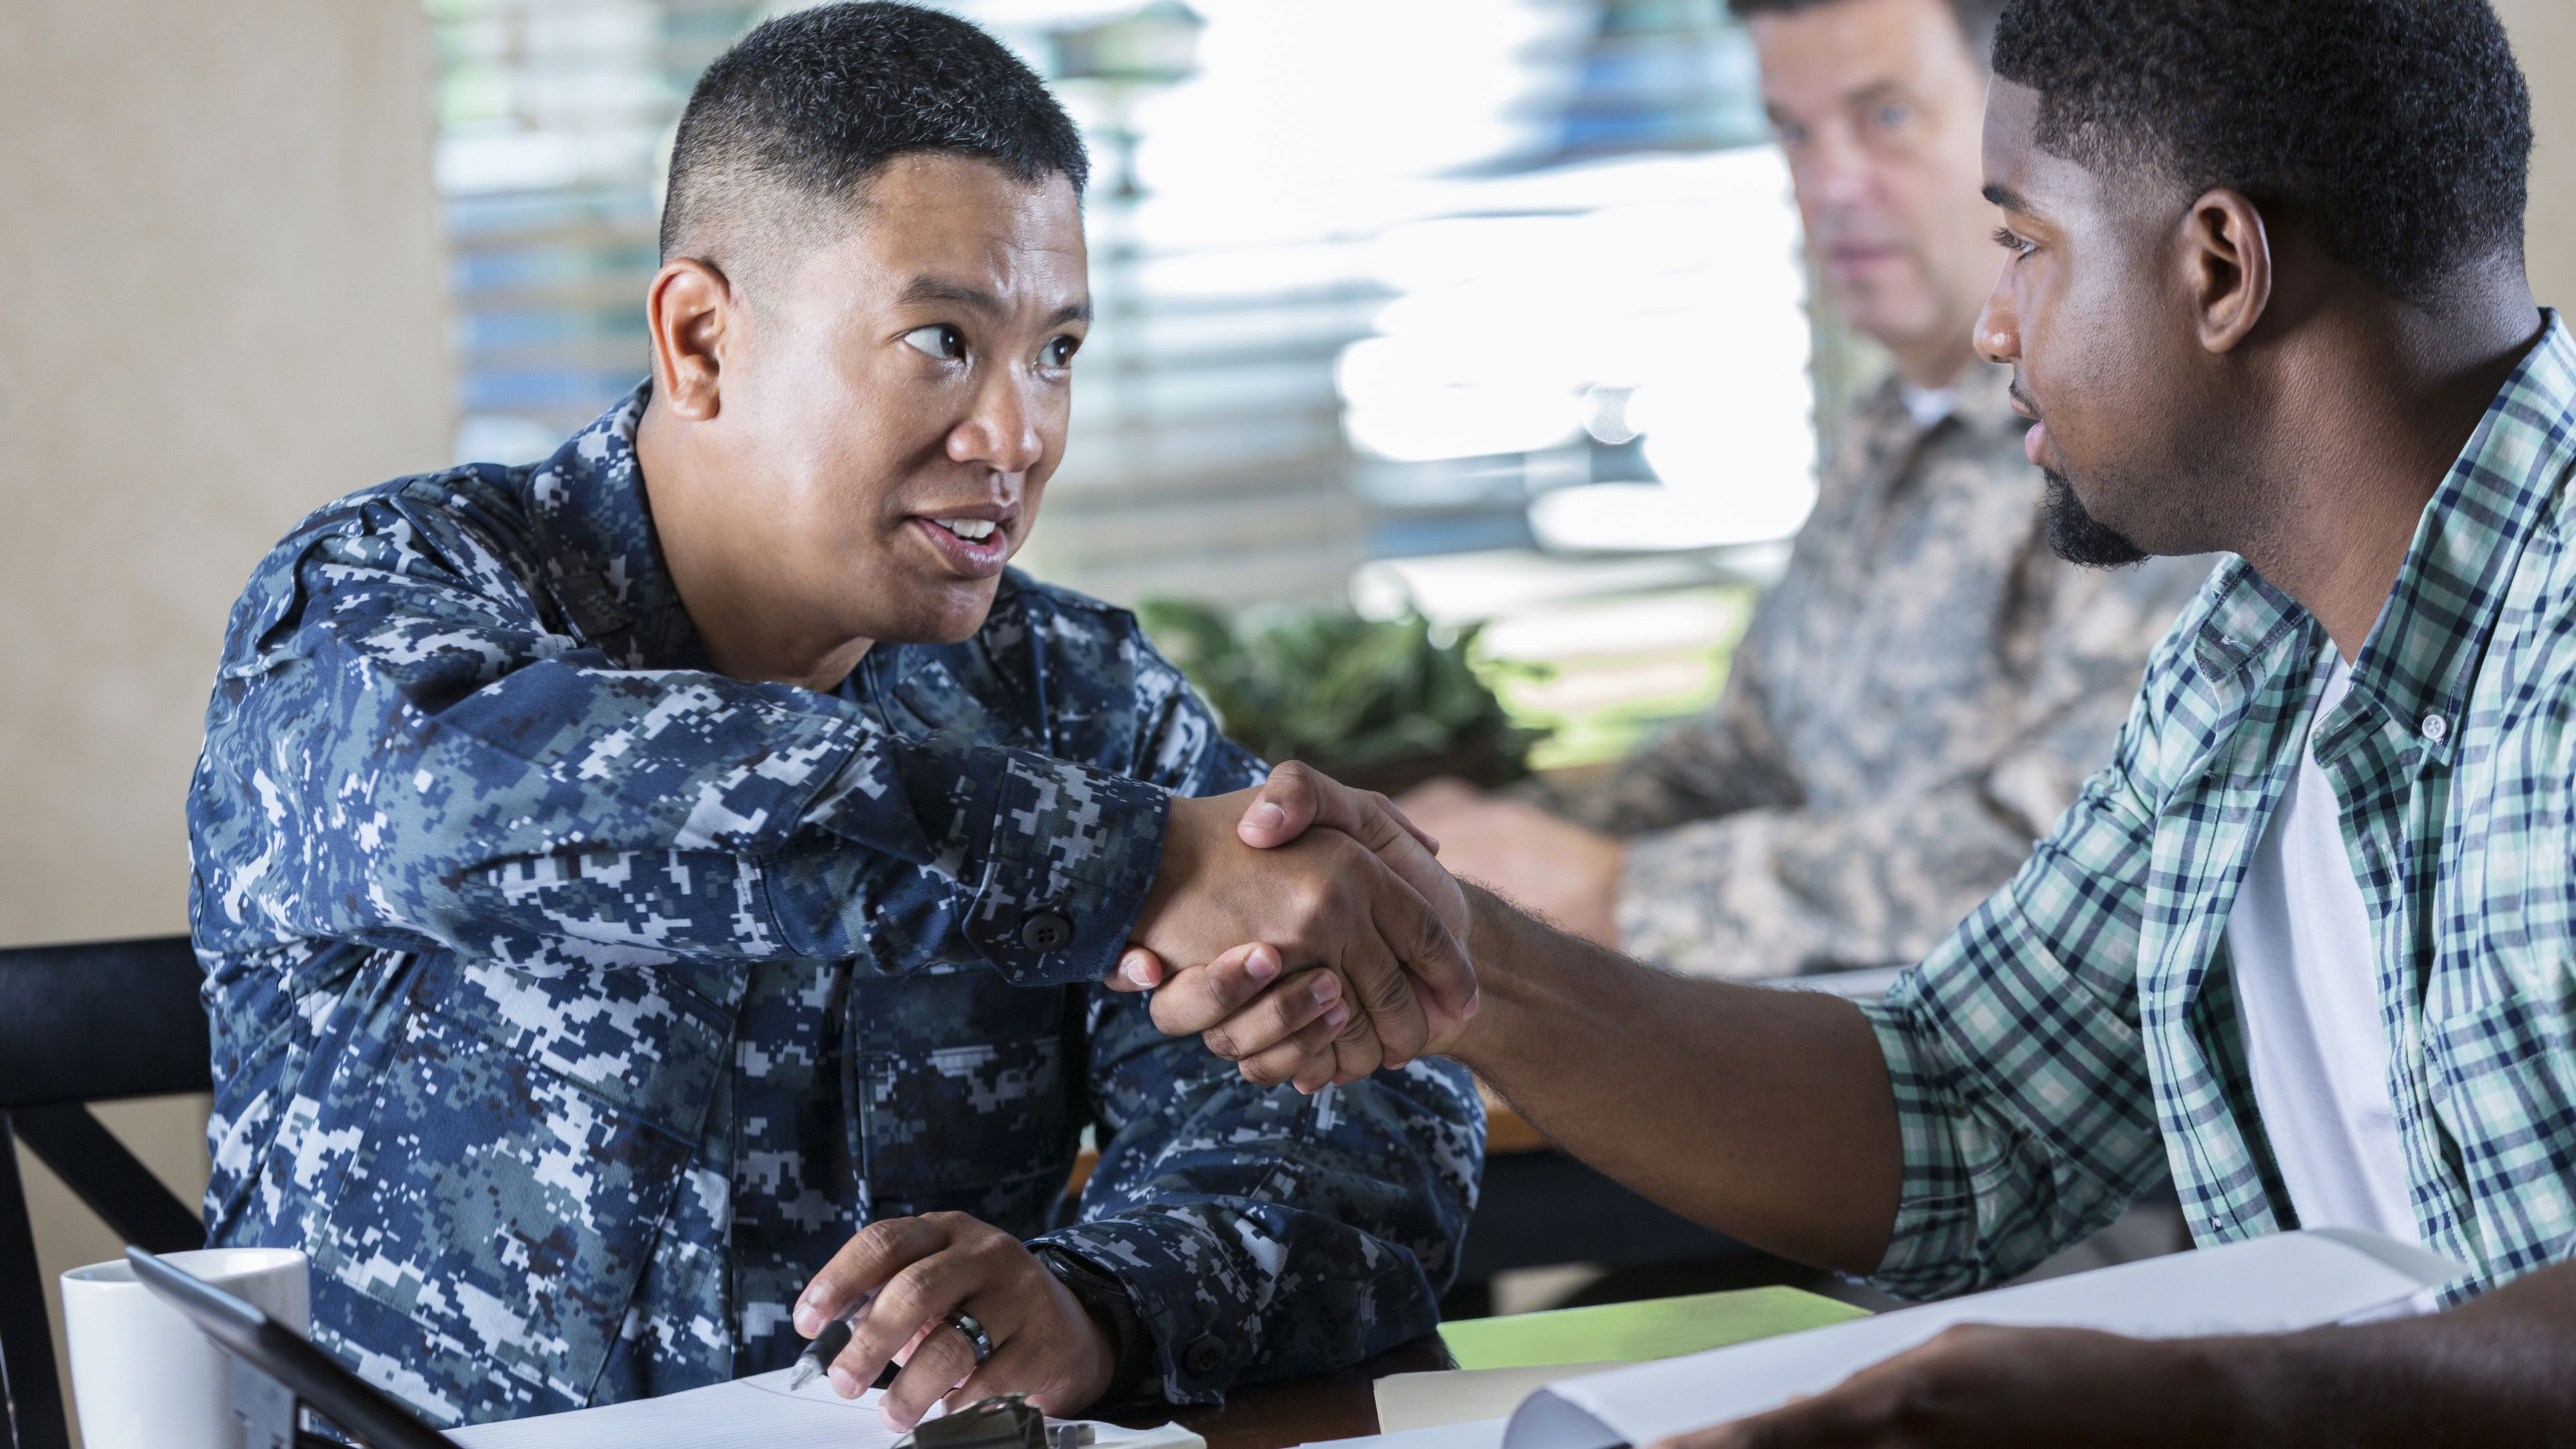 Advice for When You Meet Your Military Recruiter